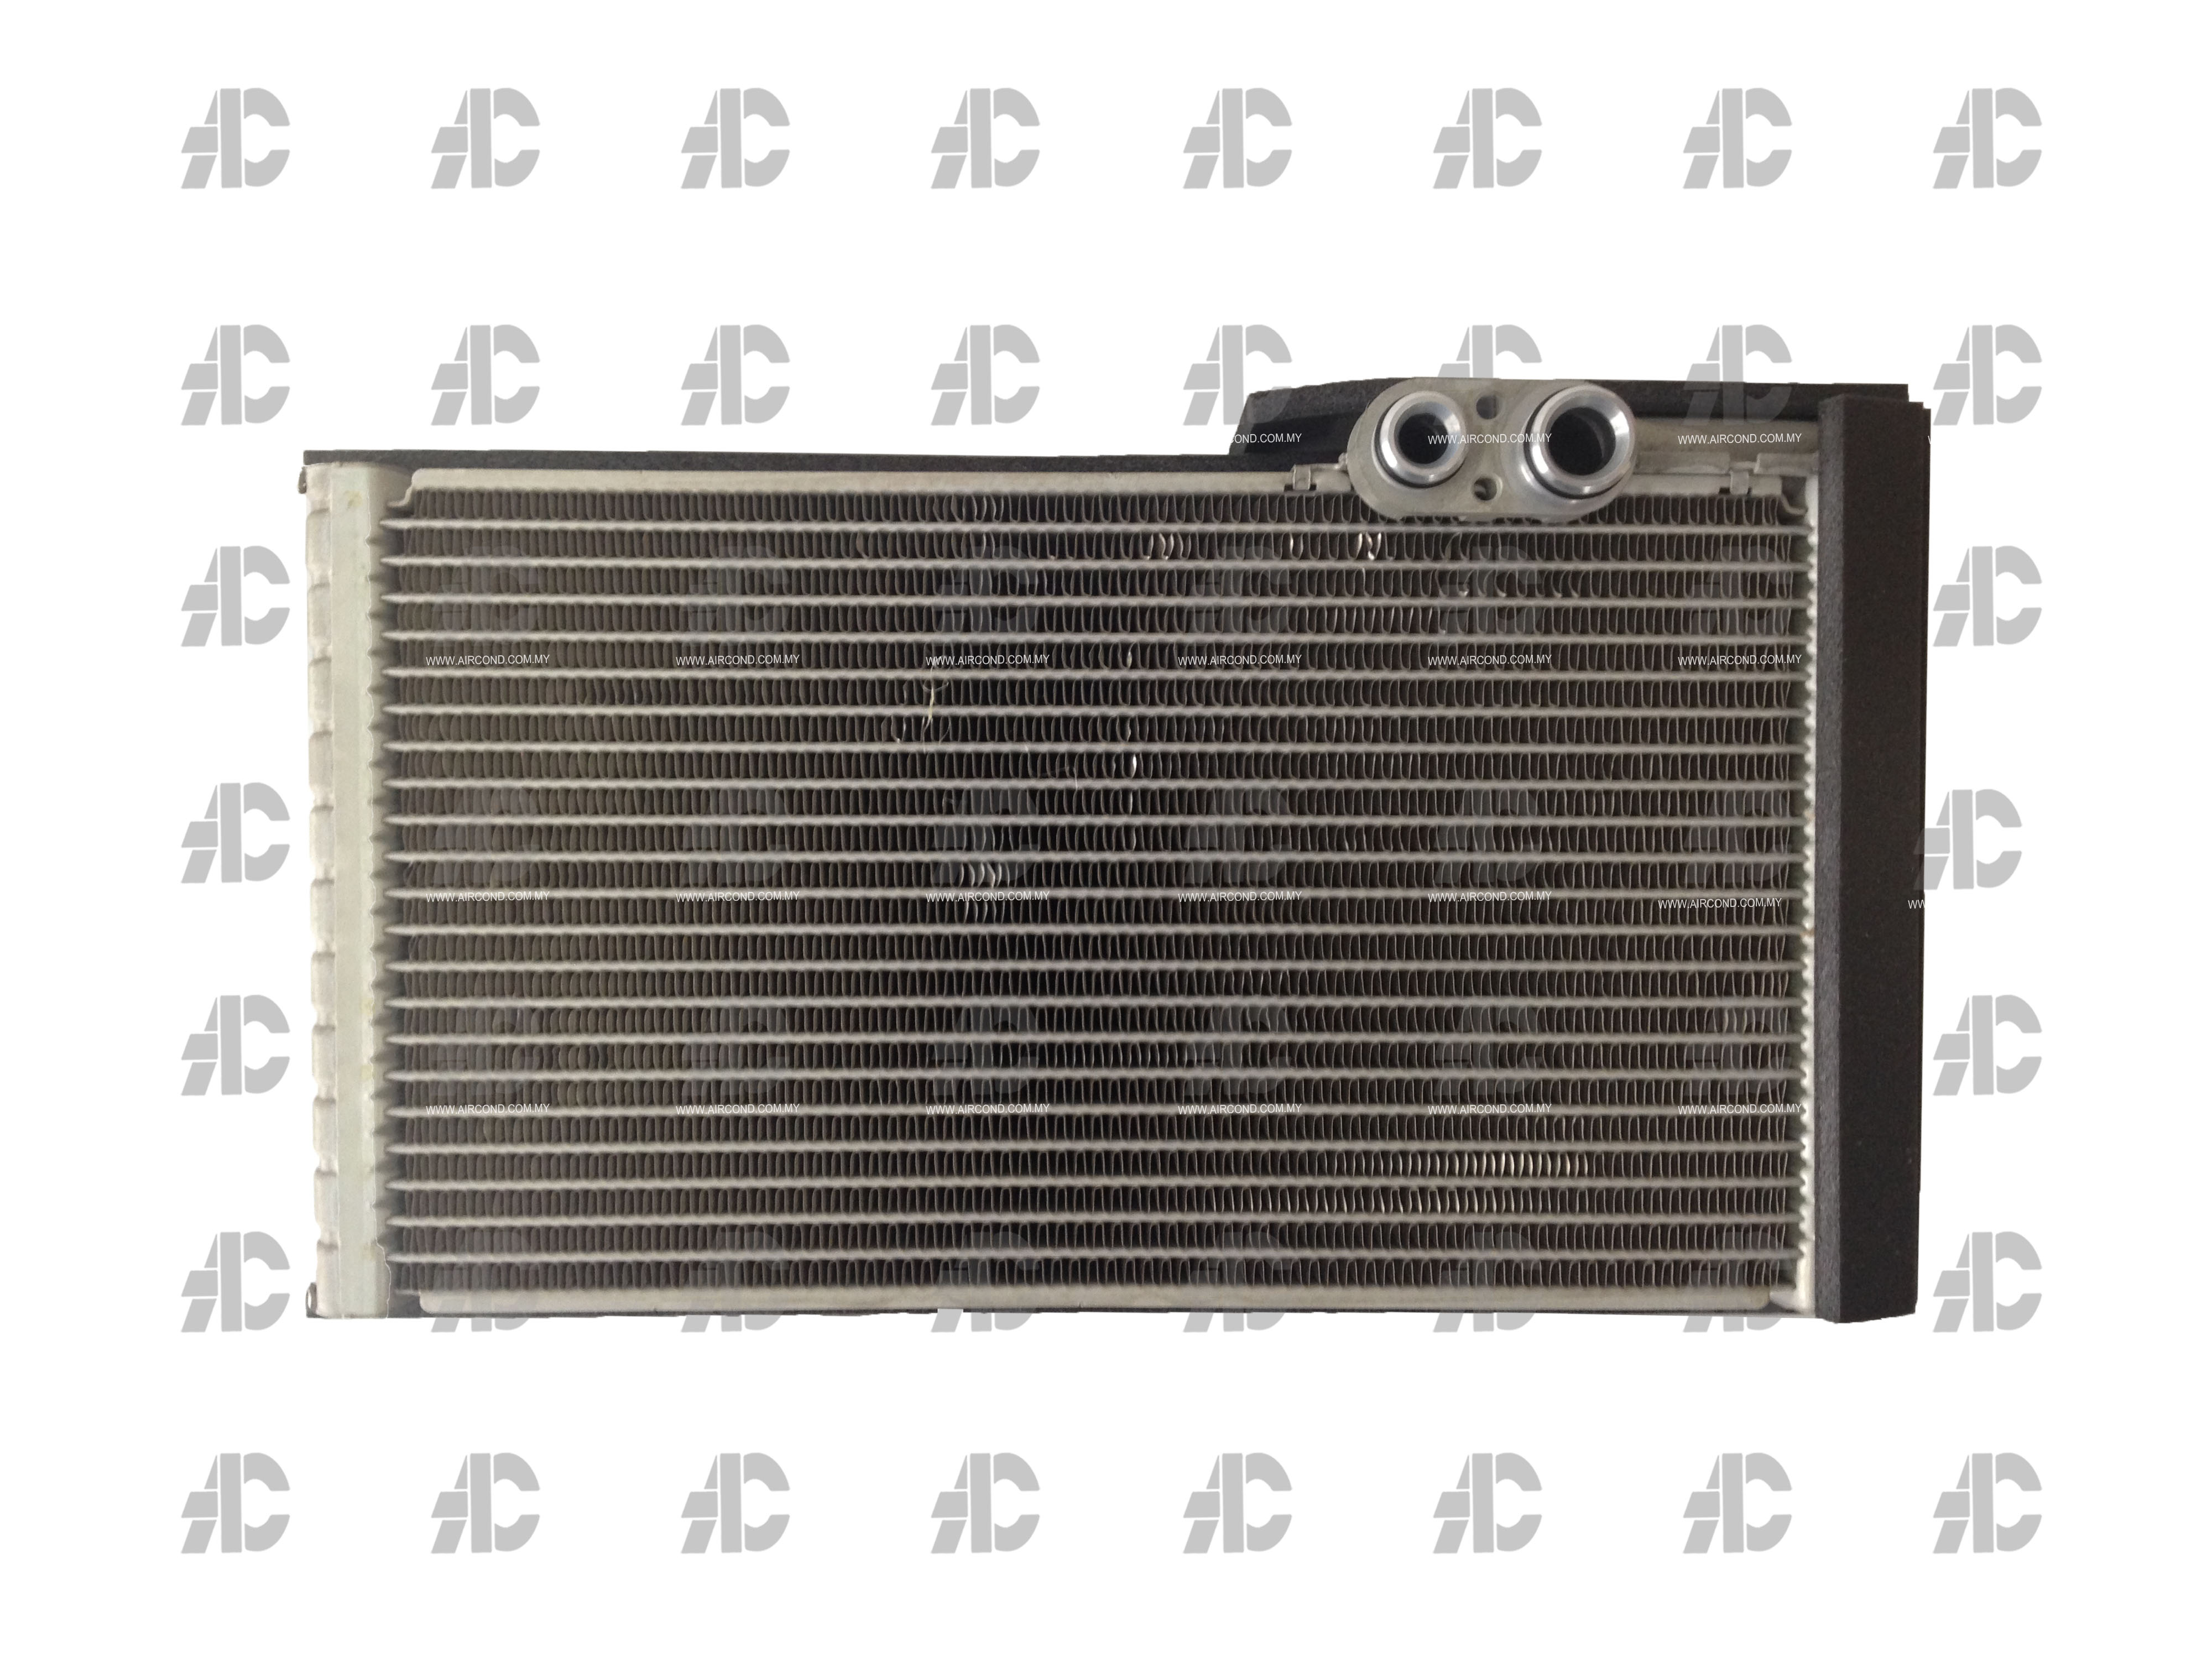 COOLING COIL REAR TOYOTA ESTIMA YEAR 2006 ACR 50 (DENSO)